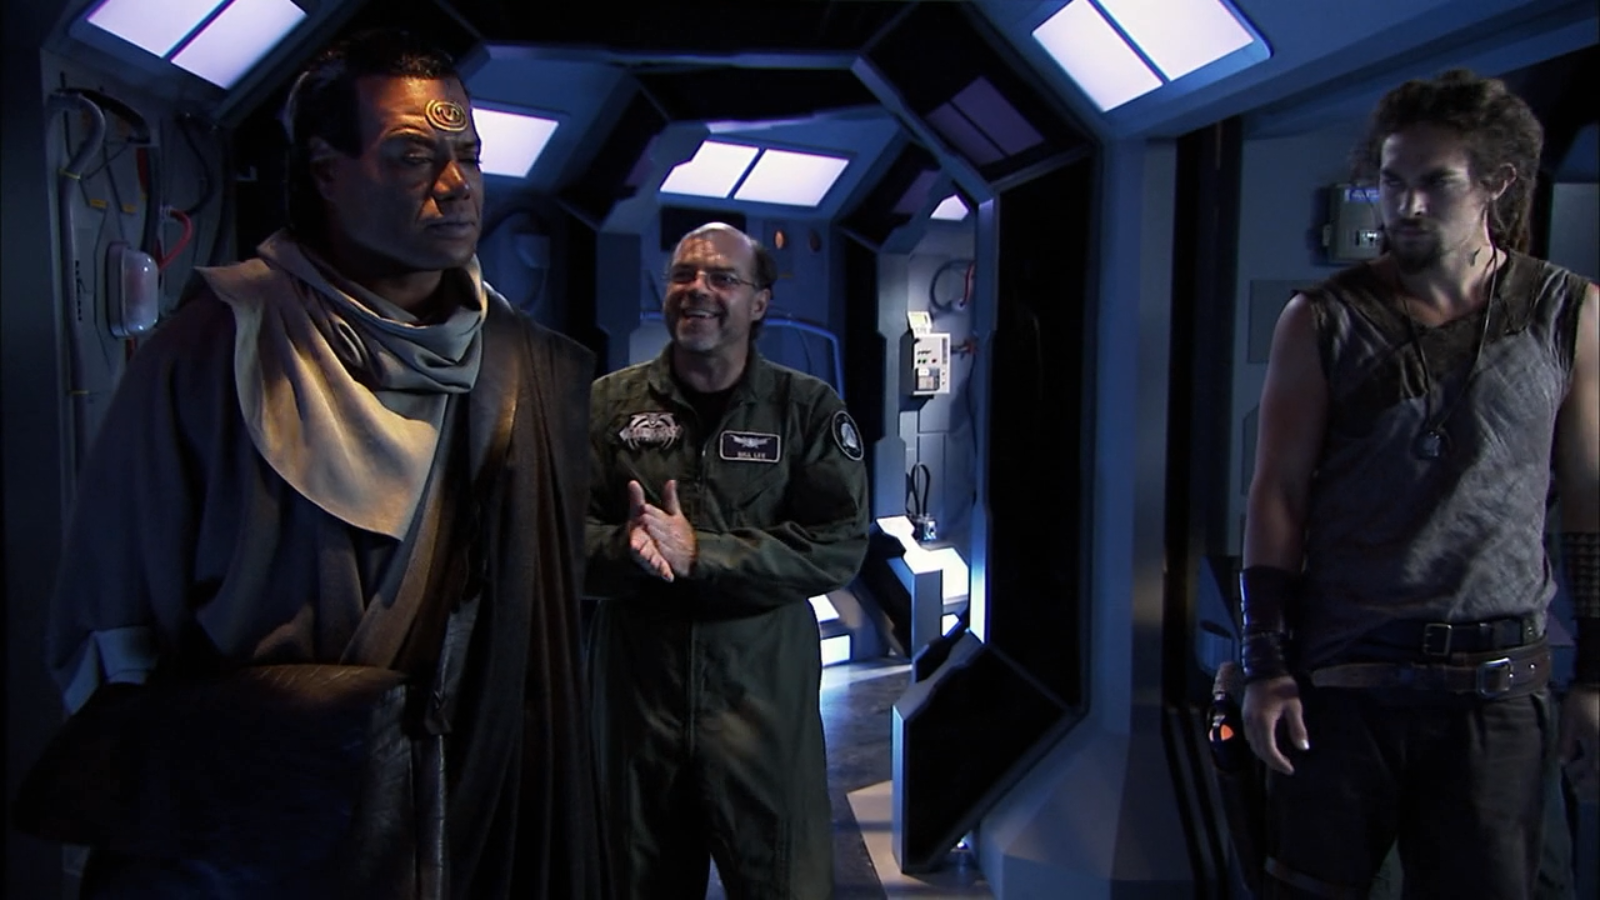 Teal'c and Ronon didn't like each other much at first, which made the eventual team up all the more enjoyable.